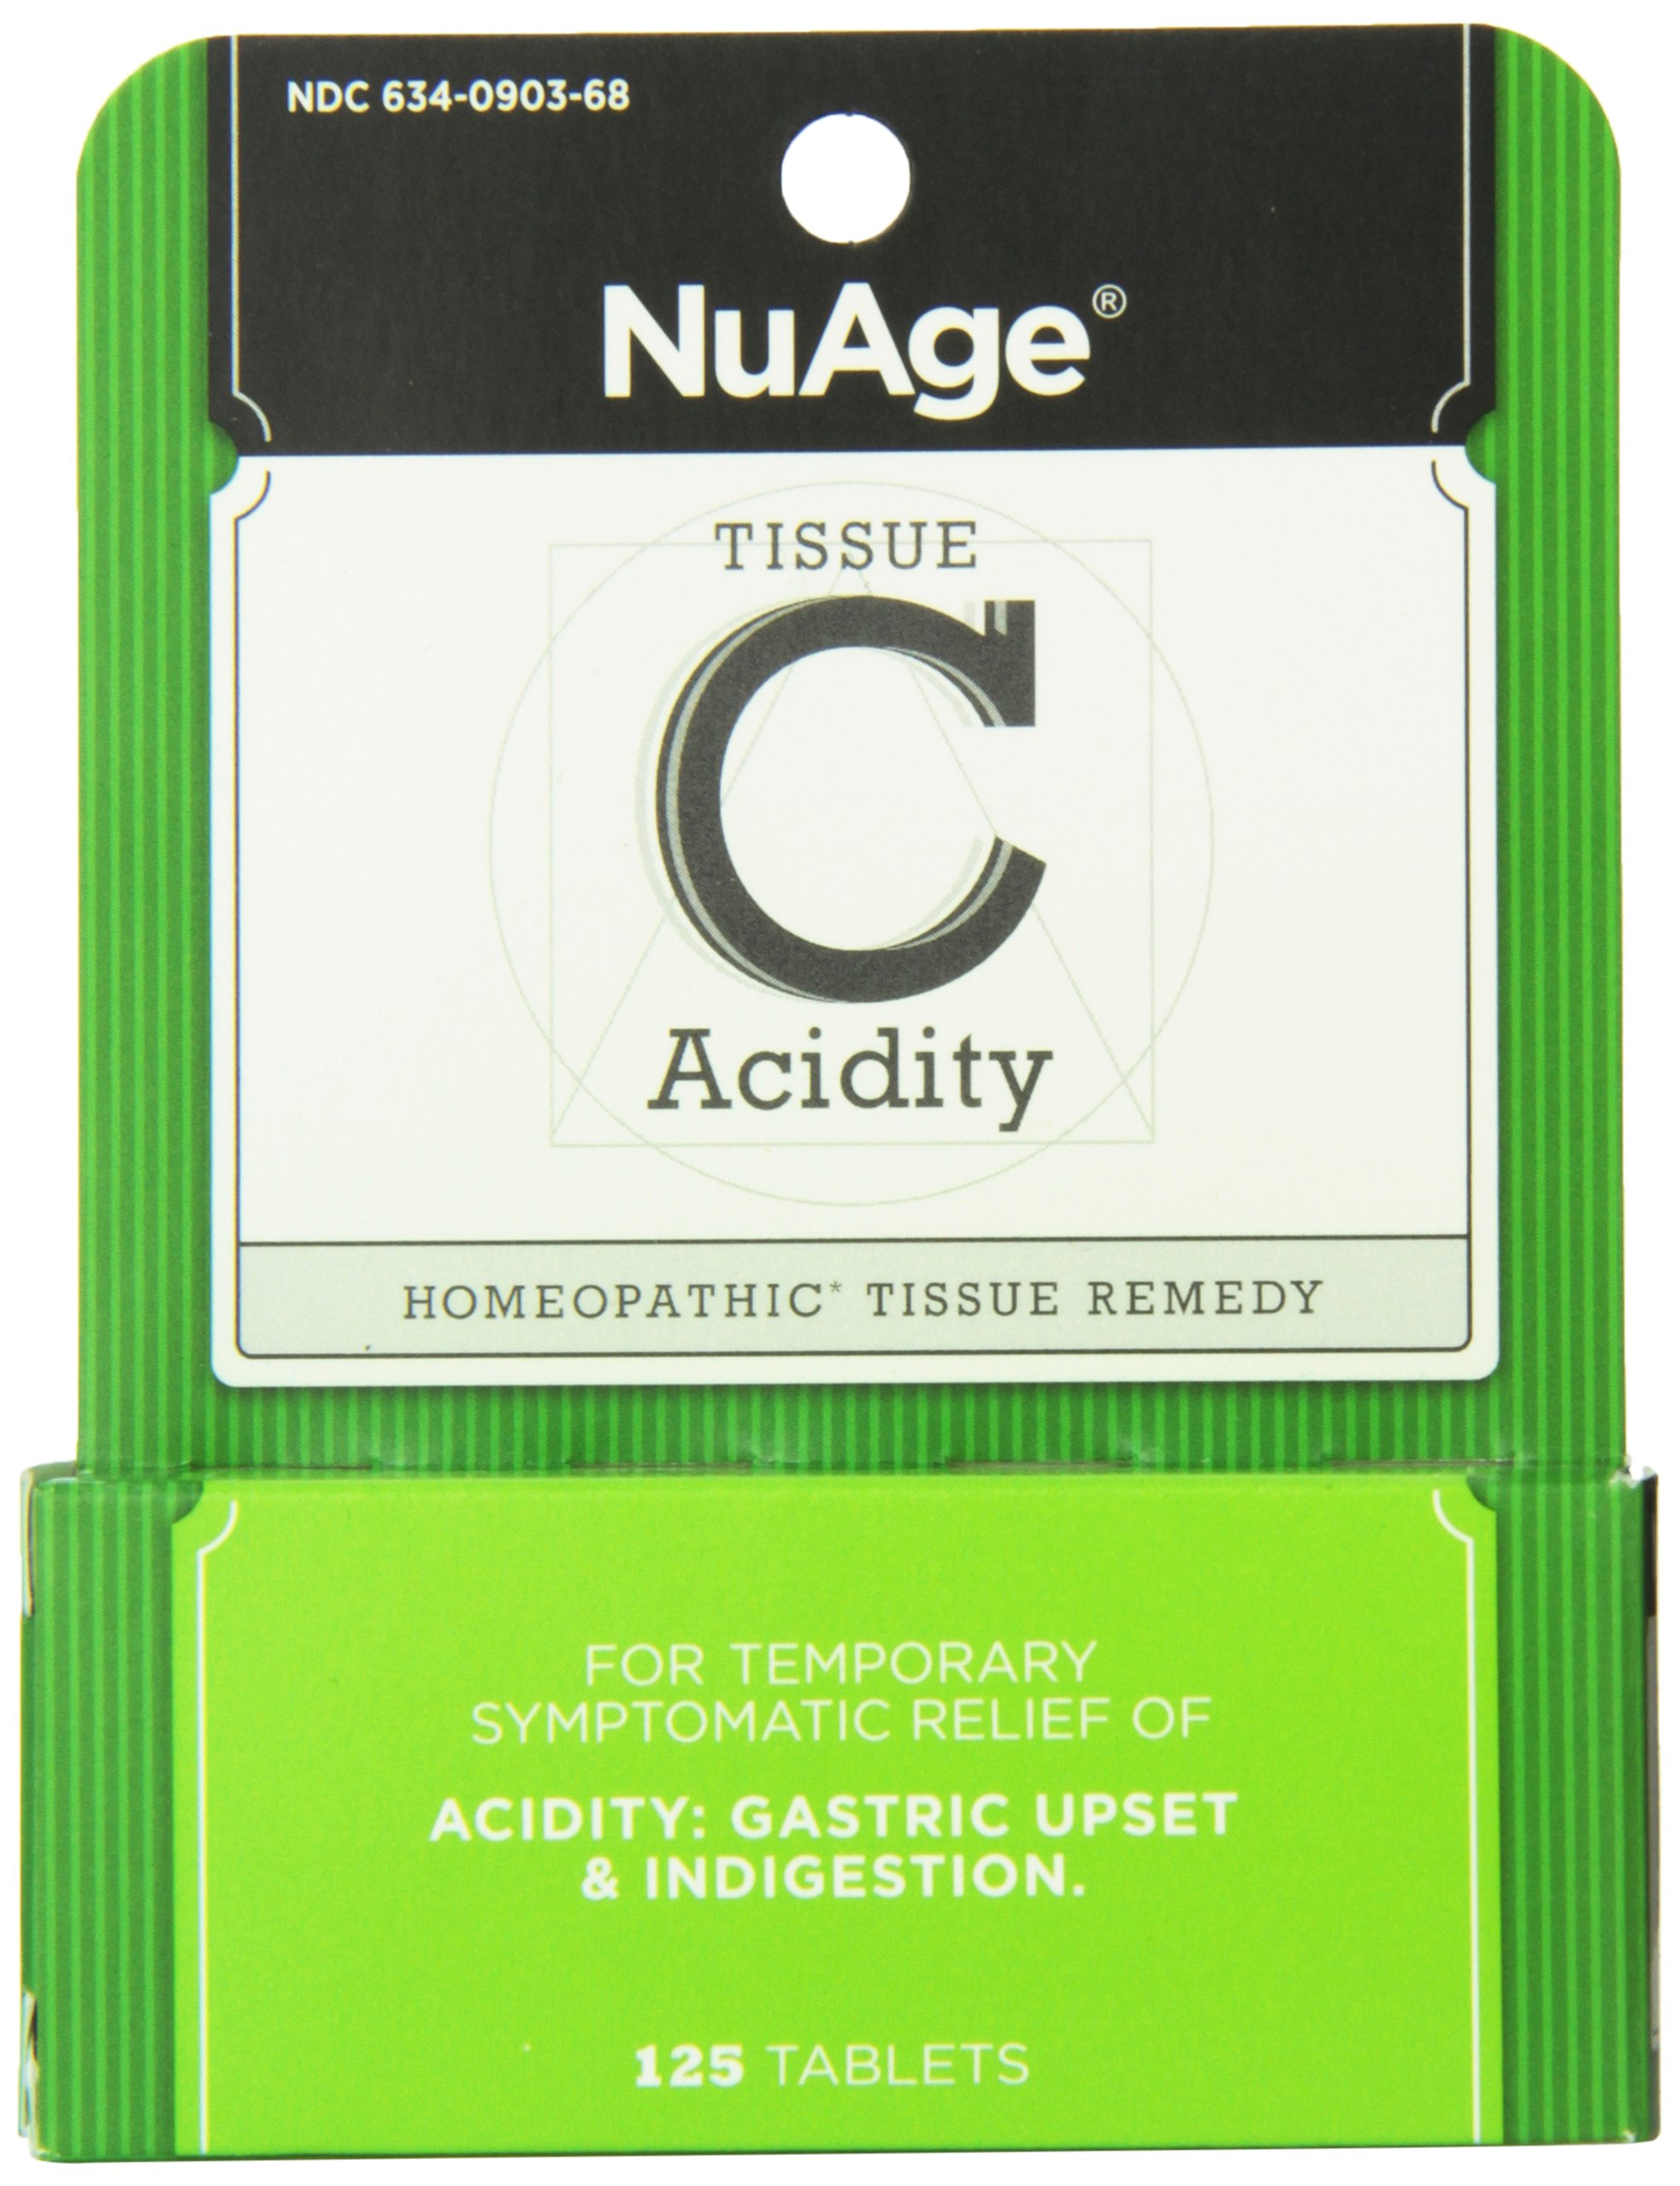 NuAge Homeopathic Tissue C Acidity Remedy, Natural Relief of Gastric Upset and Indigestion, 125